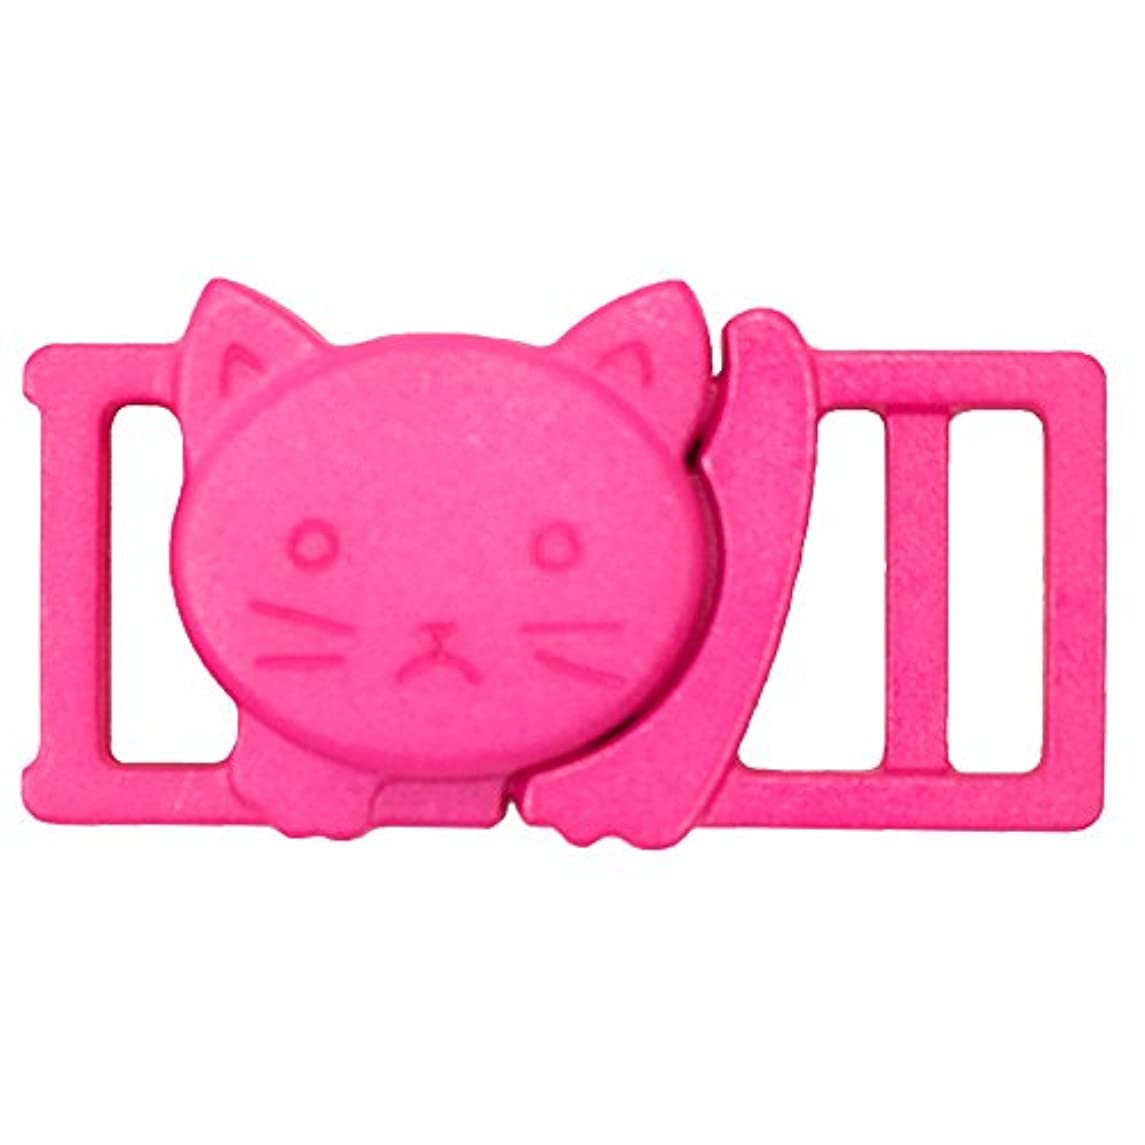 "Cat Head Shaped Plastic Safety Breakaway 3/8"" (11mm) Break-away Buckle"